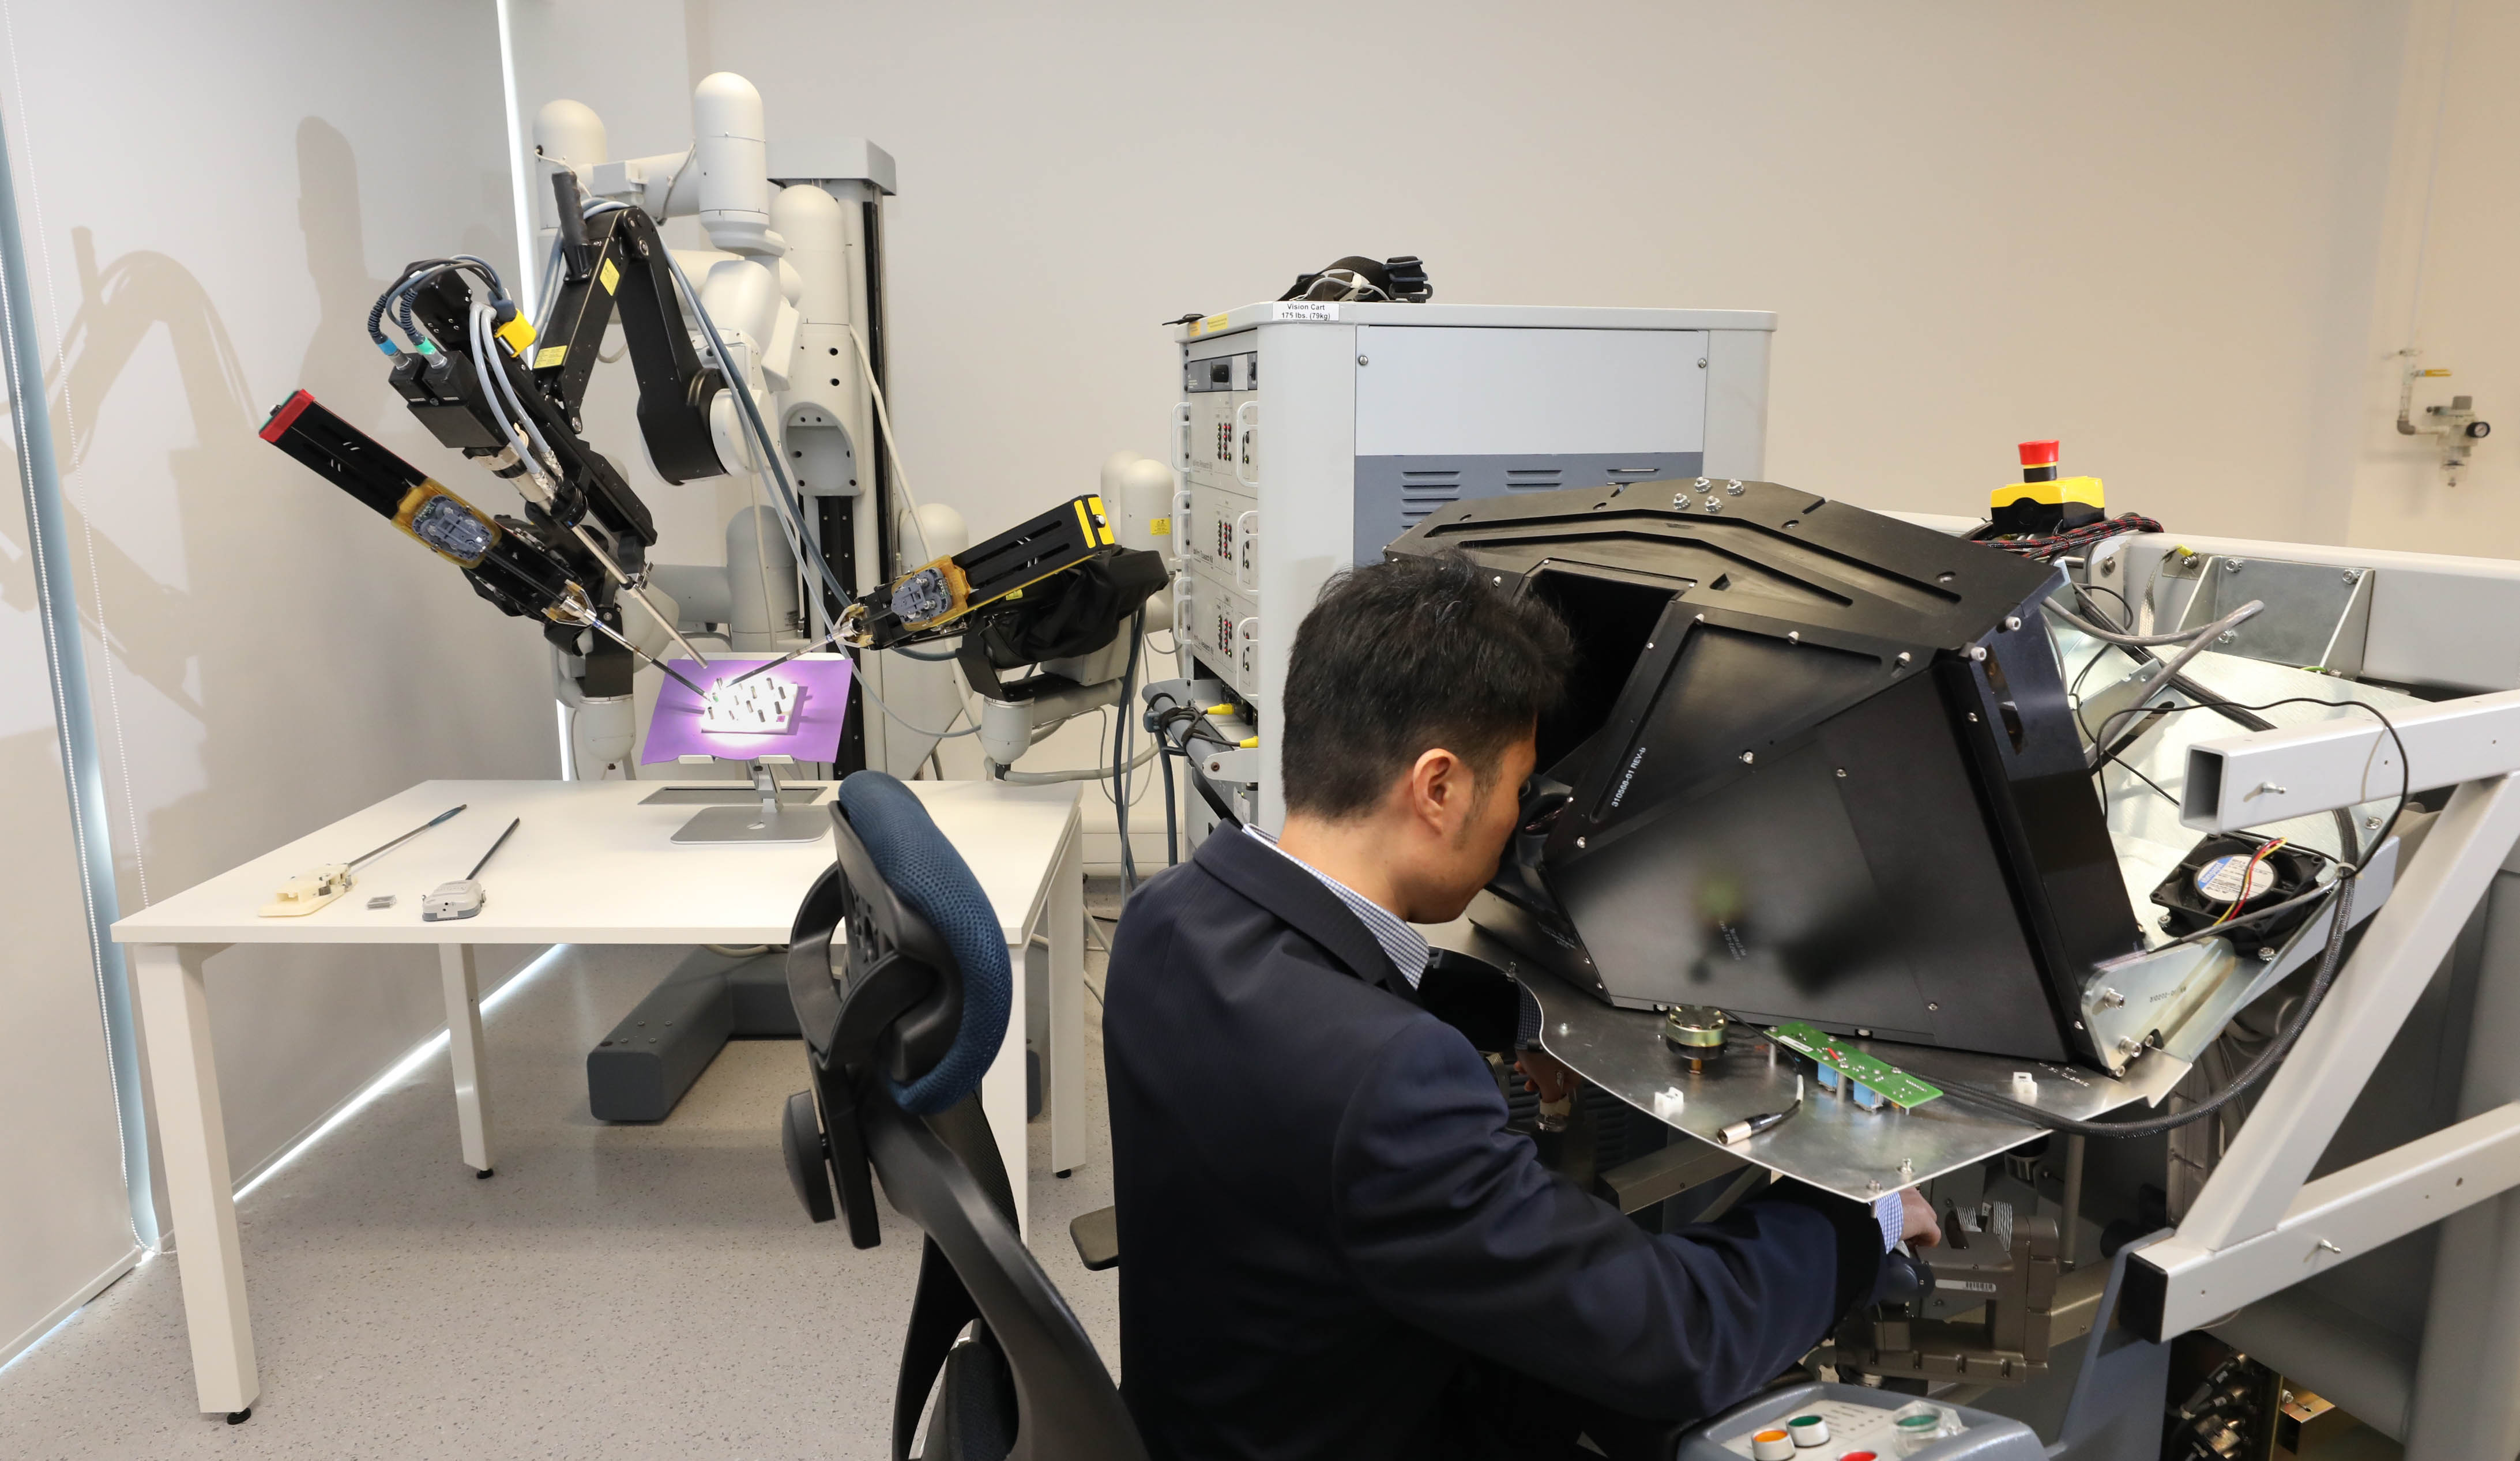 CUHK has been collaborating with Johns Hopkins University to develop medical robotic instruments and control algorithms to provide safer robotic tools for patients by making the operation safer and easier.